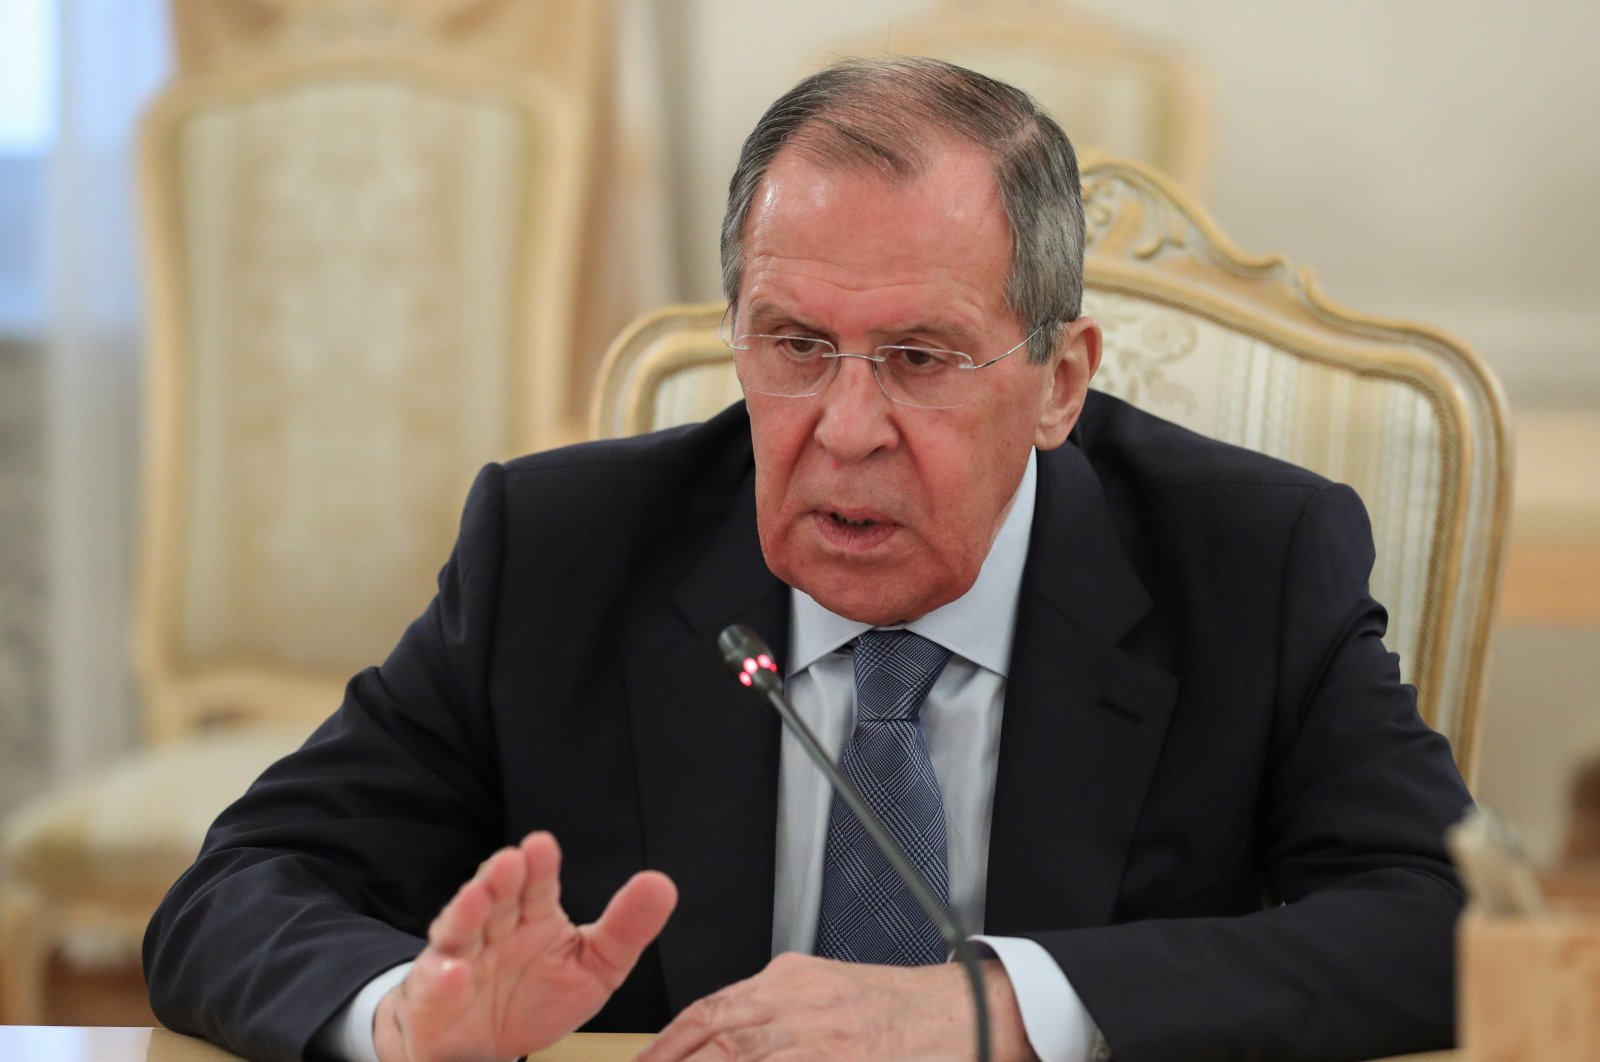 Russian Foreign Minister Sergei Lavrov speaks during a meeting with President of the Libyan House of Representatives Aguila Saleh Issa in Moscow, 03 July 2020. (EPA-EFE Photo)